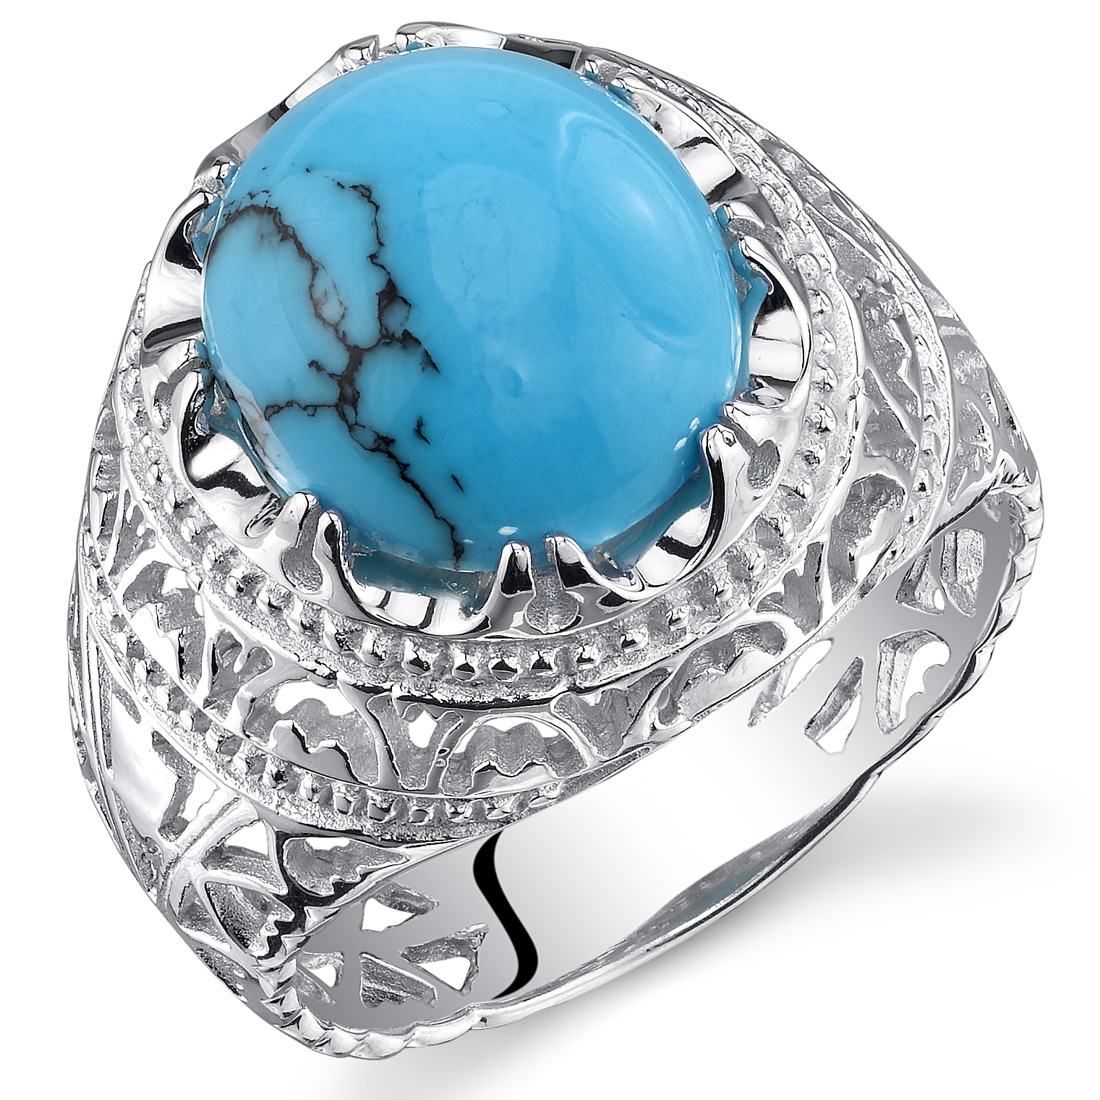 Peora Turquoise Men's Medieval Engagement Ring in Rhodium-Plated Sterling Silver